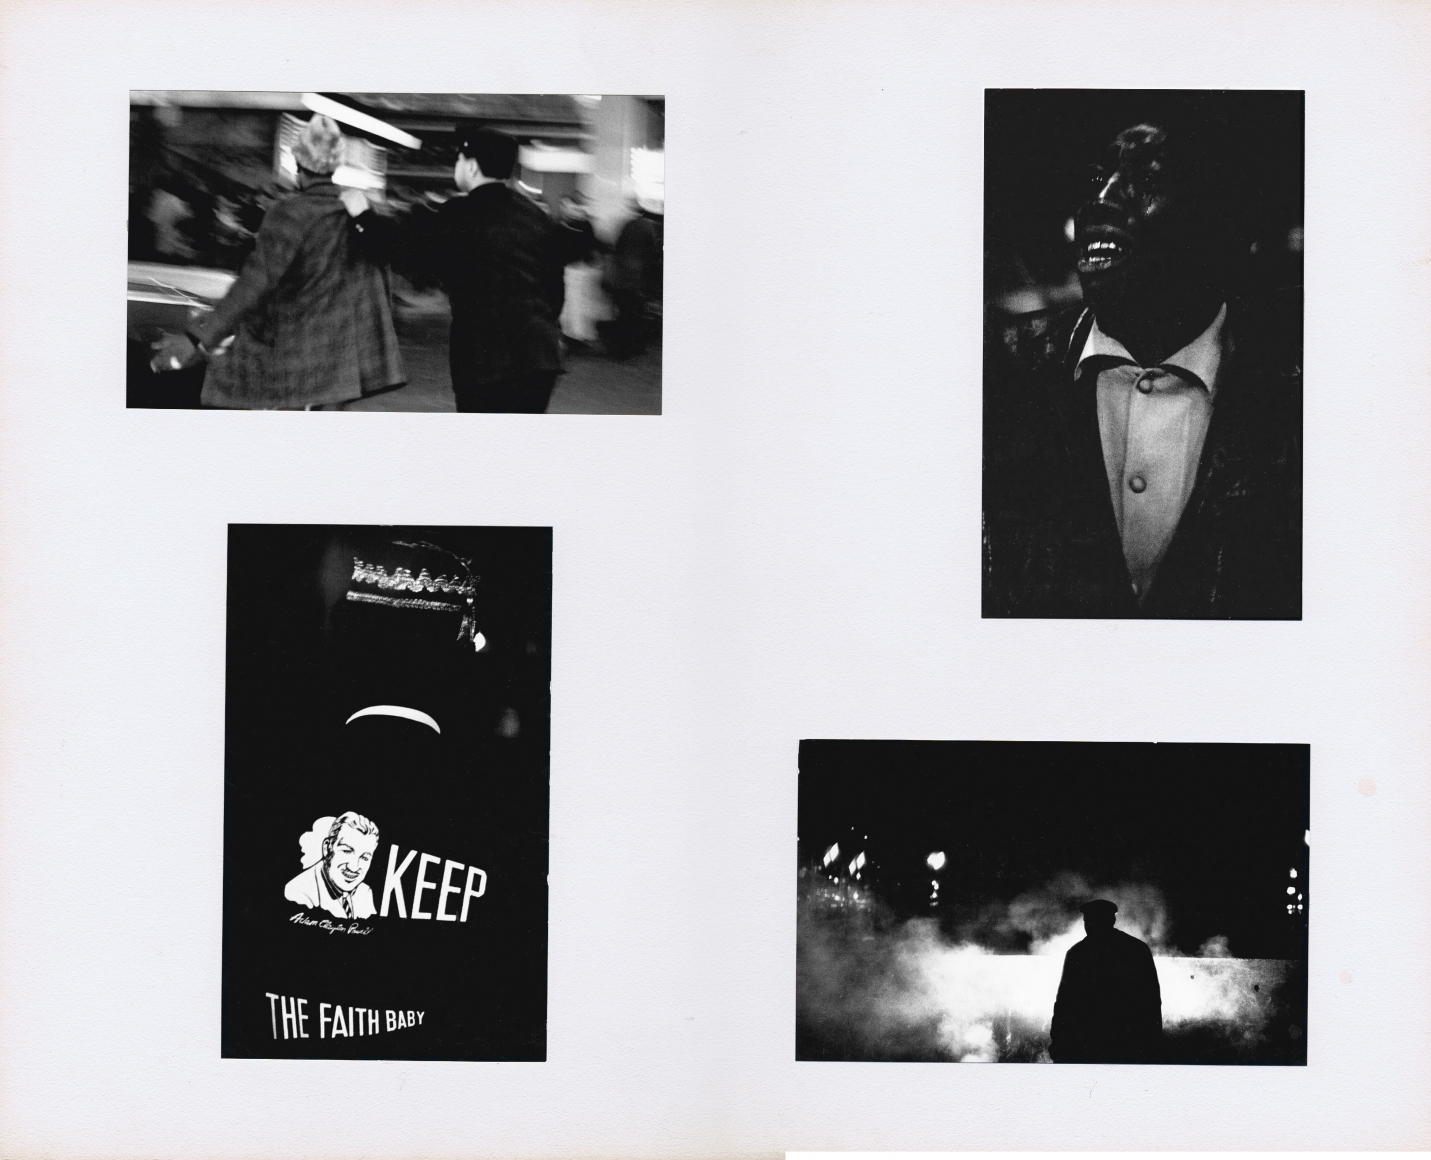 """33. Beuford Smith, I Have a Dream: The Assassination of Martin Luther King, Jr., April 5, 1968. Four photographs mounted on white board. Features a man being arrested, a young man crying, a man wearing a jacket that reads """"Keep the faith, baby,"""" and a figure silhouetted against clouds of smoke."""